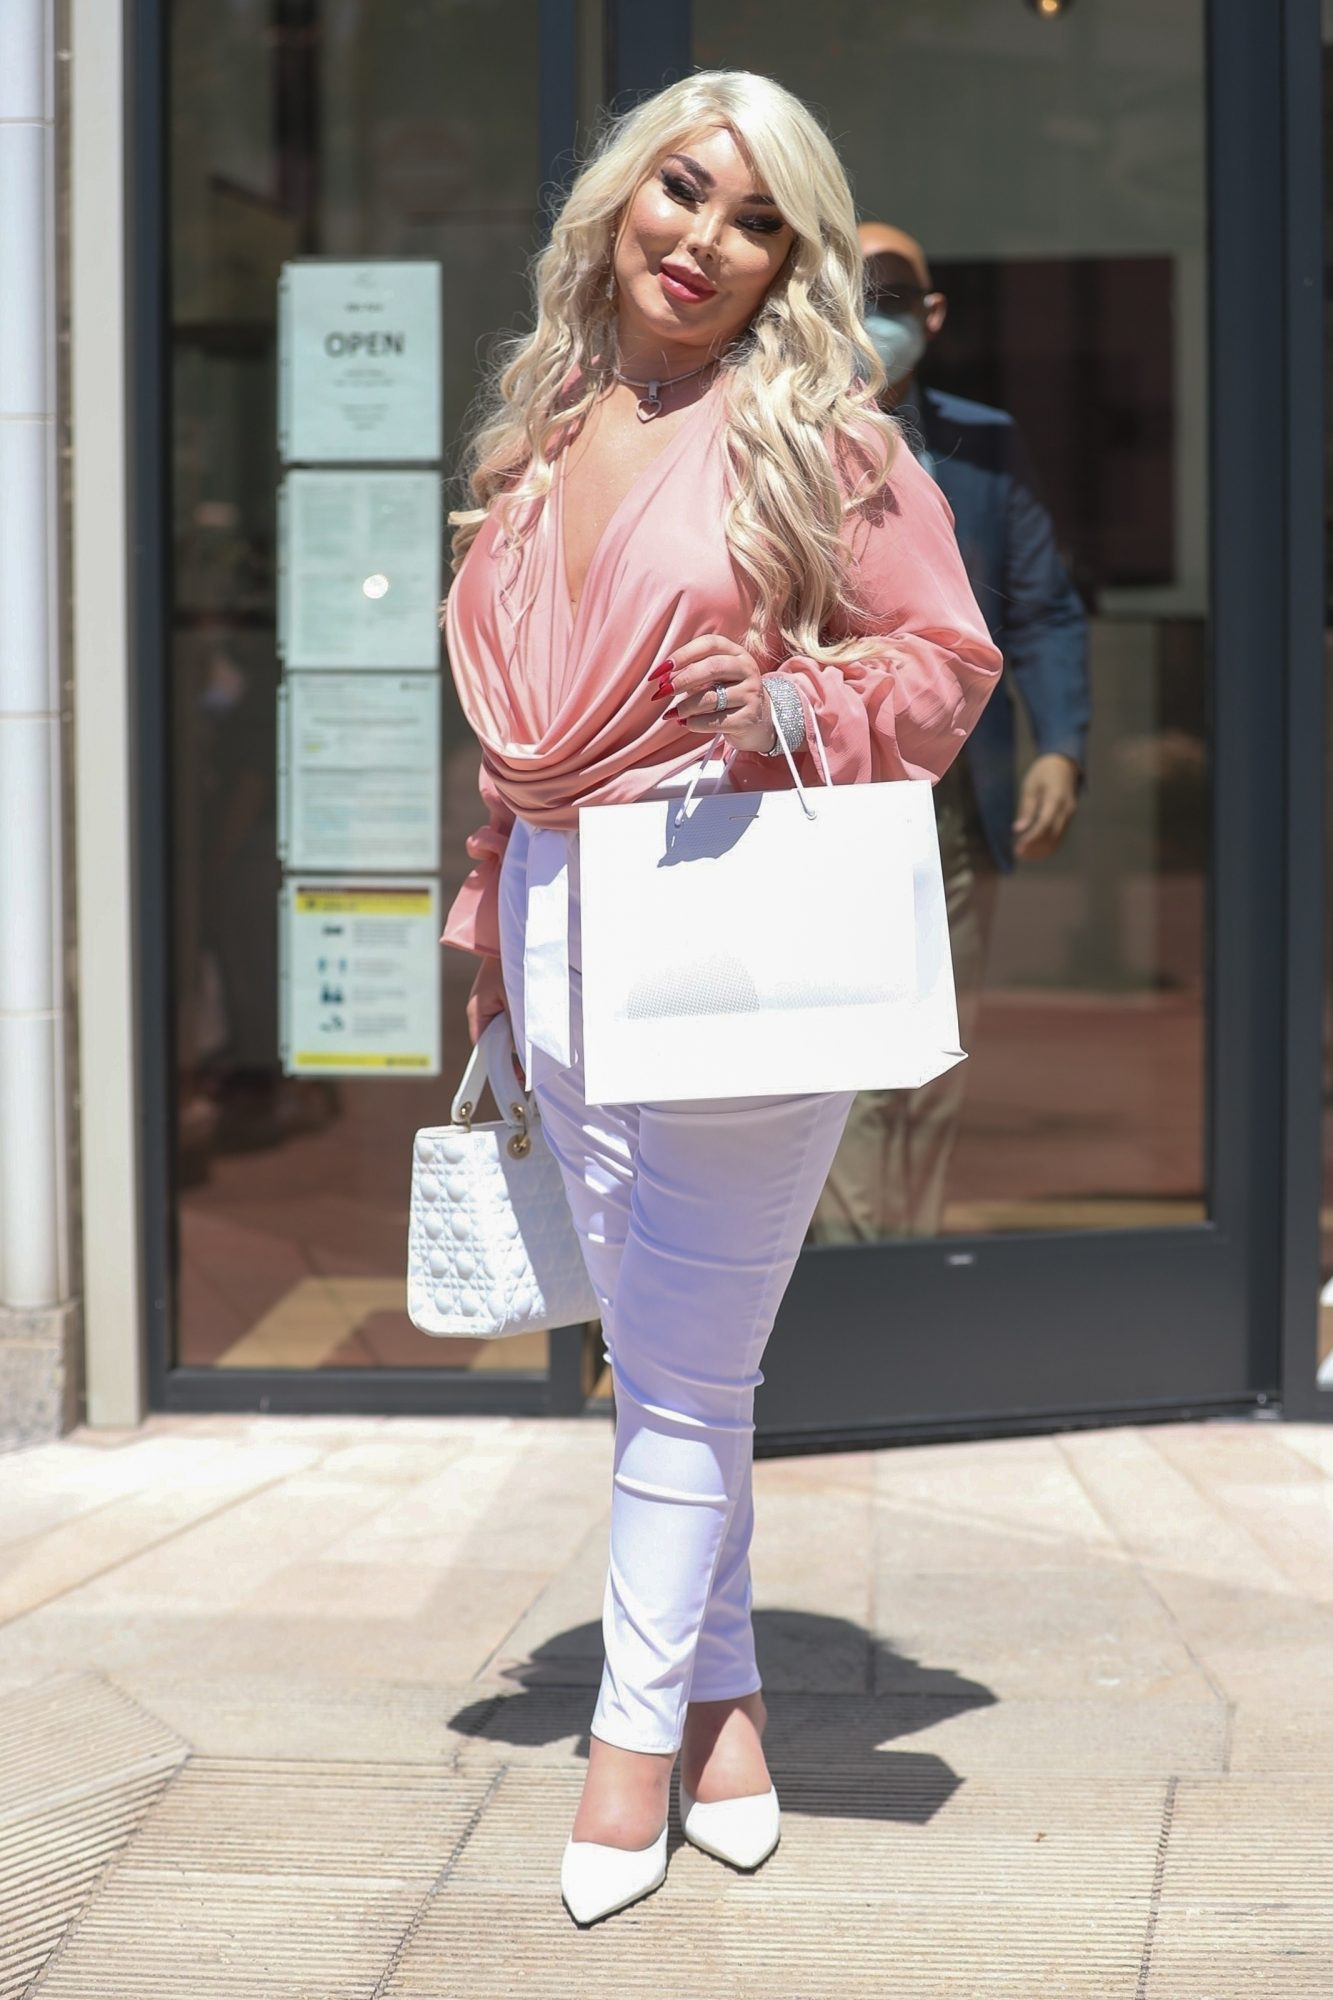 Jessica Alves causes Baby Ken Doll to Crash his Car while Shopping in Beverly Hills